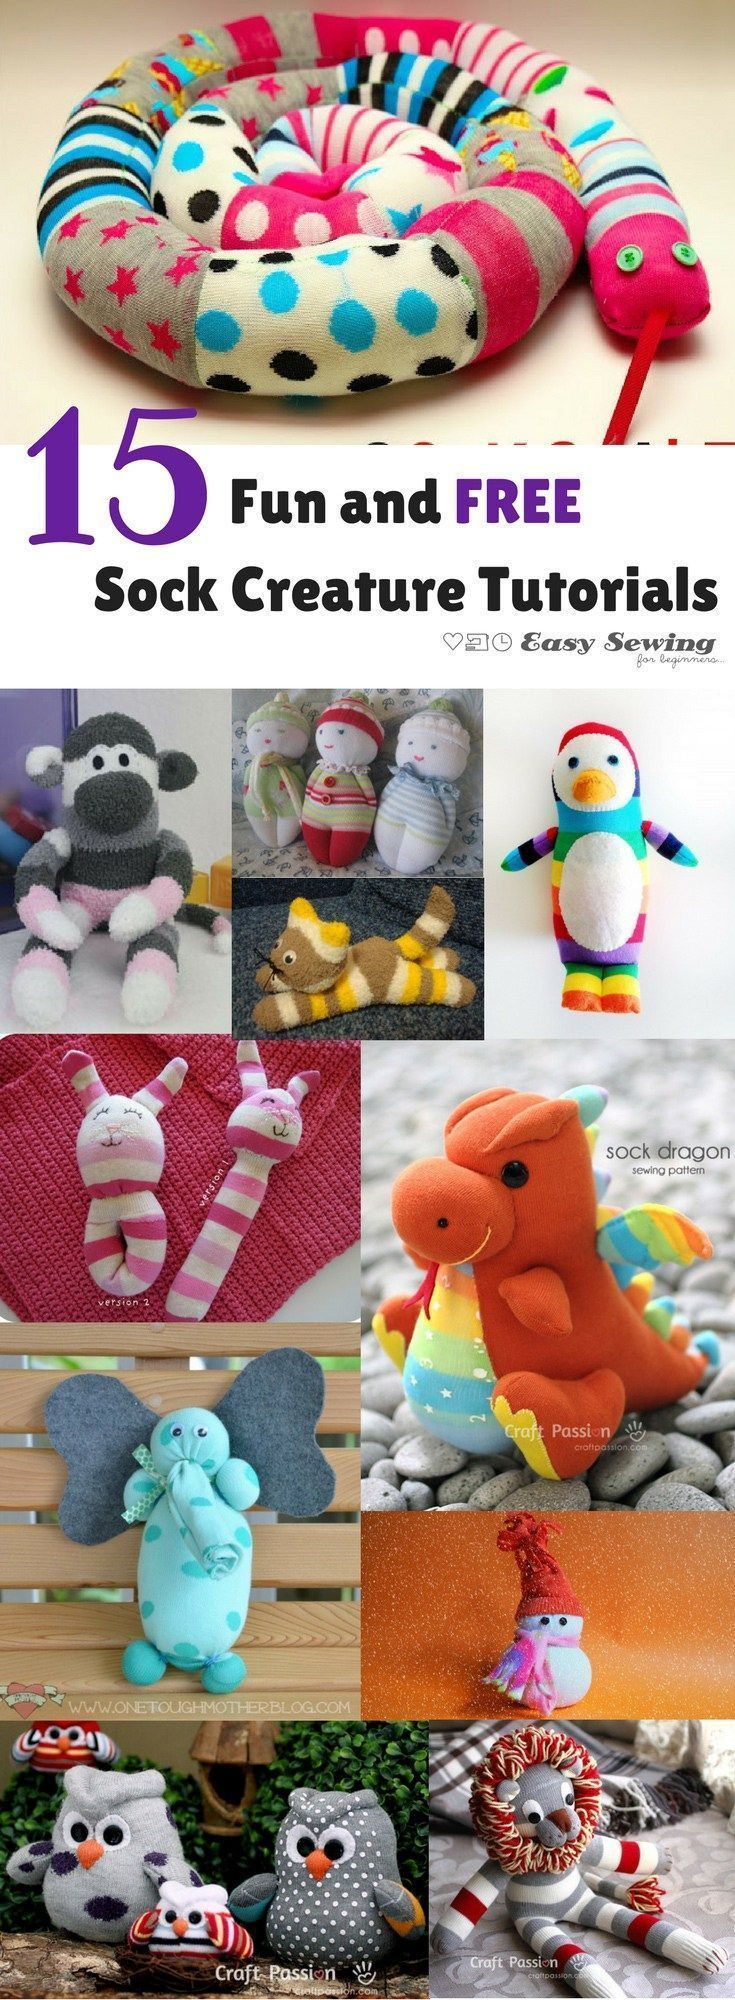 15 funny and free sock creature tutorials for sewing!